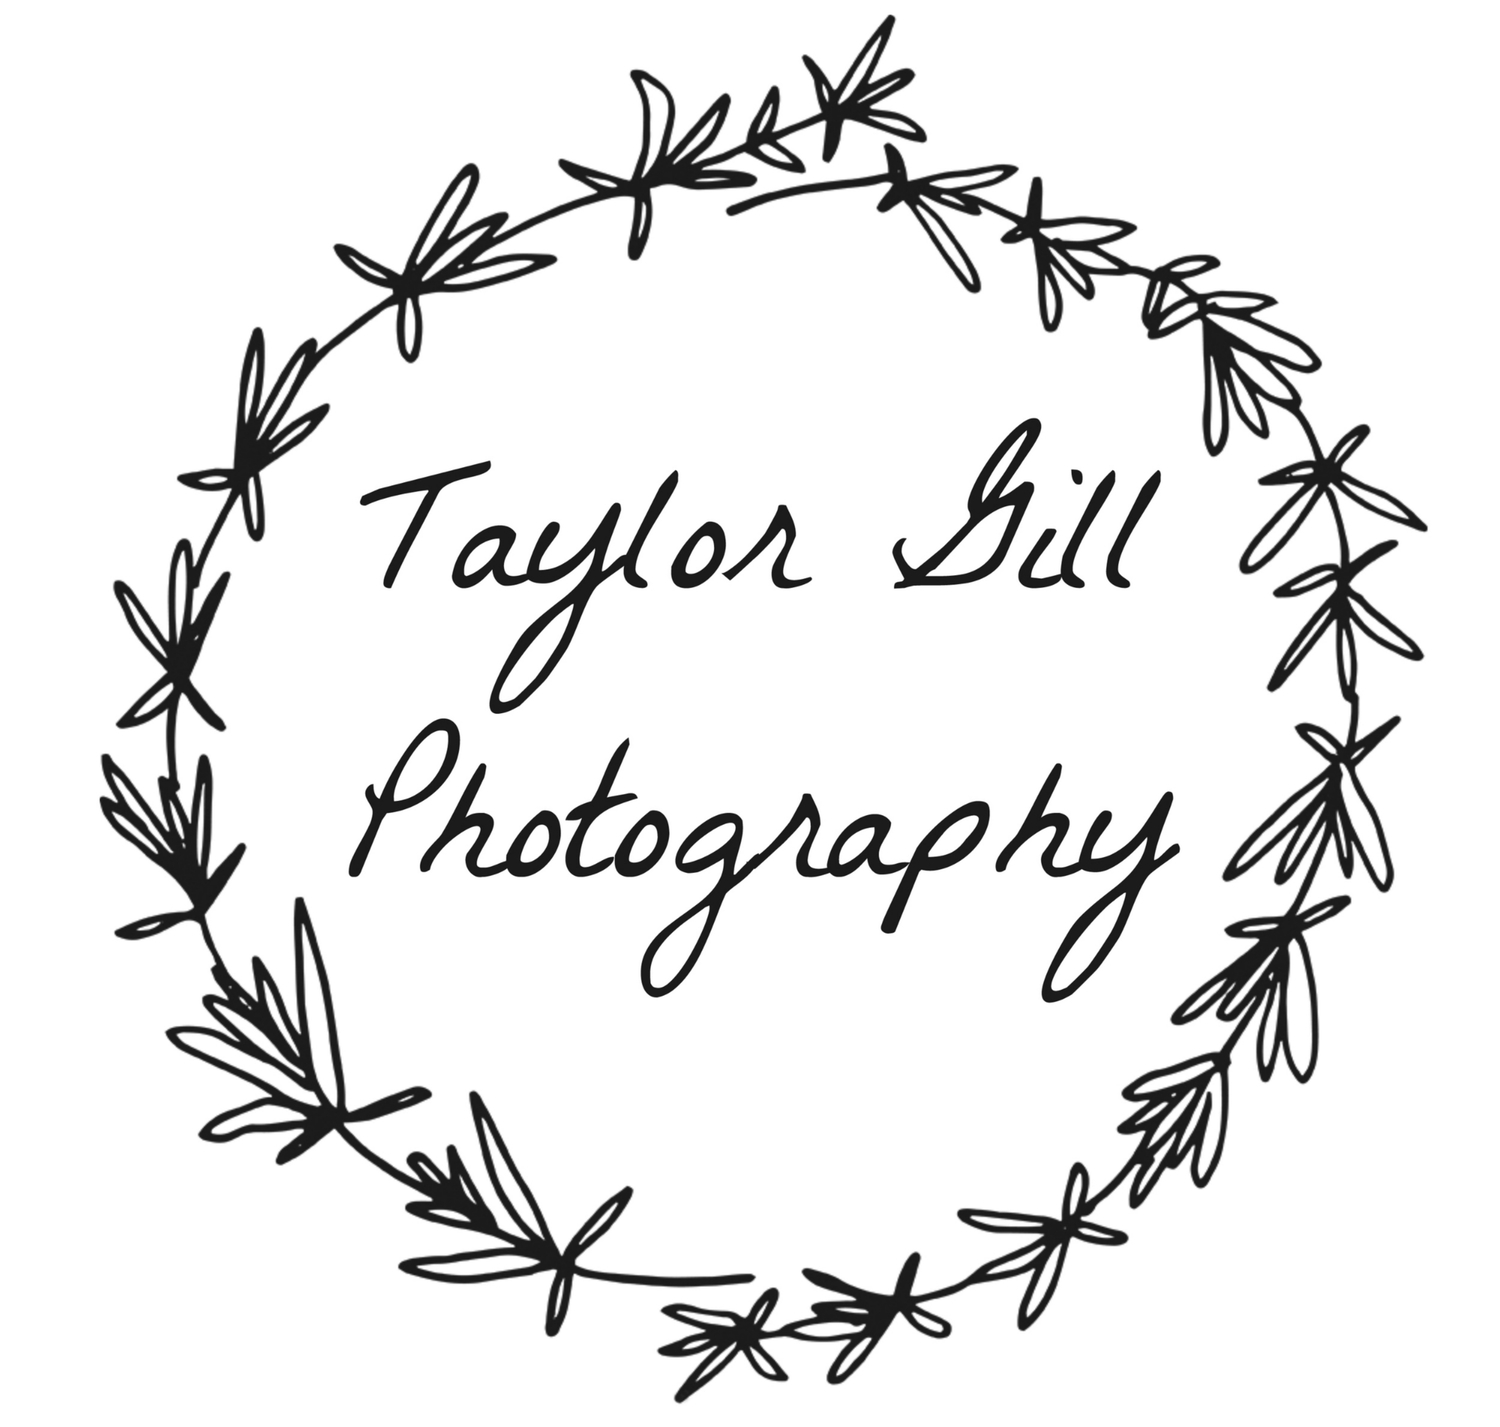 Taylor Gill Photography